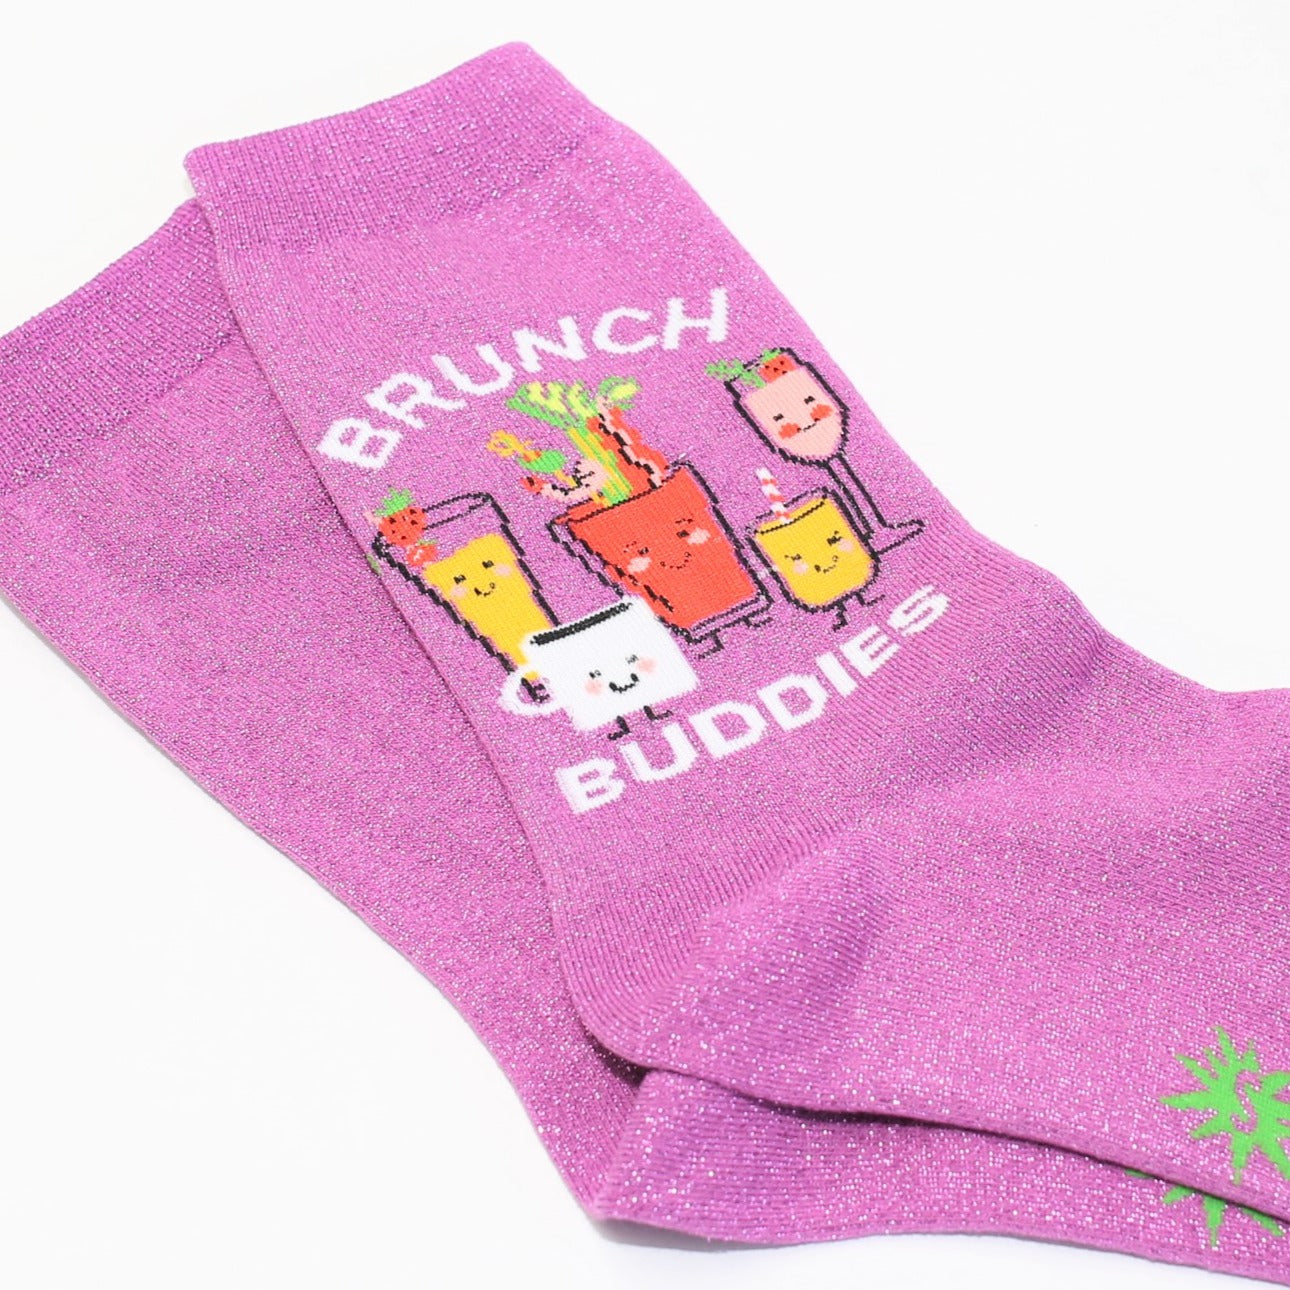 Brunch Buddies Sock